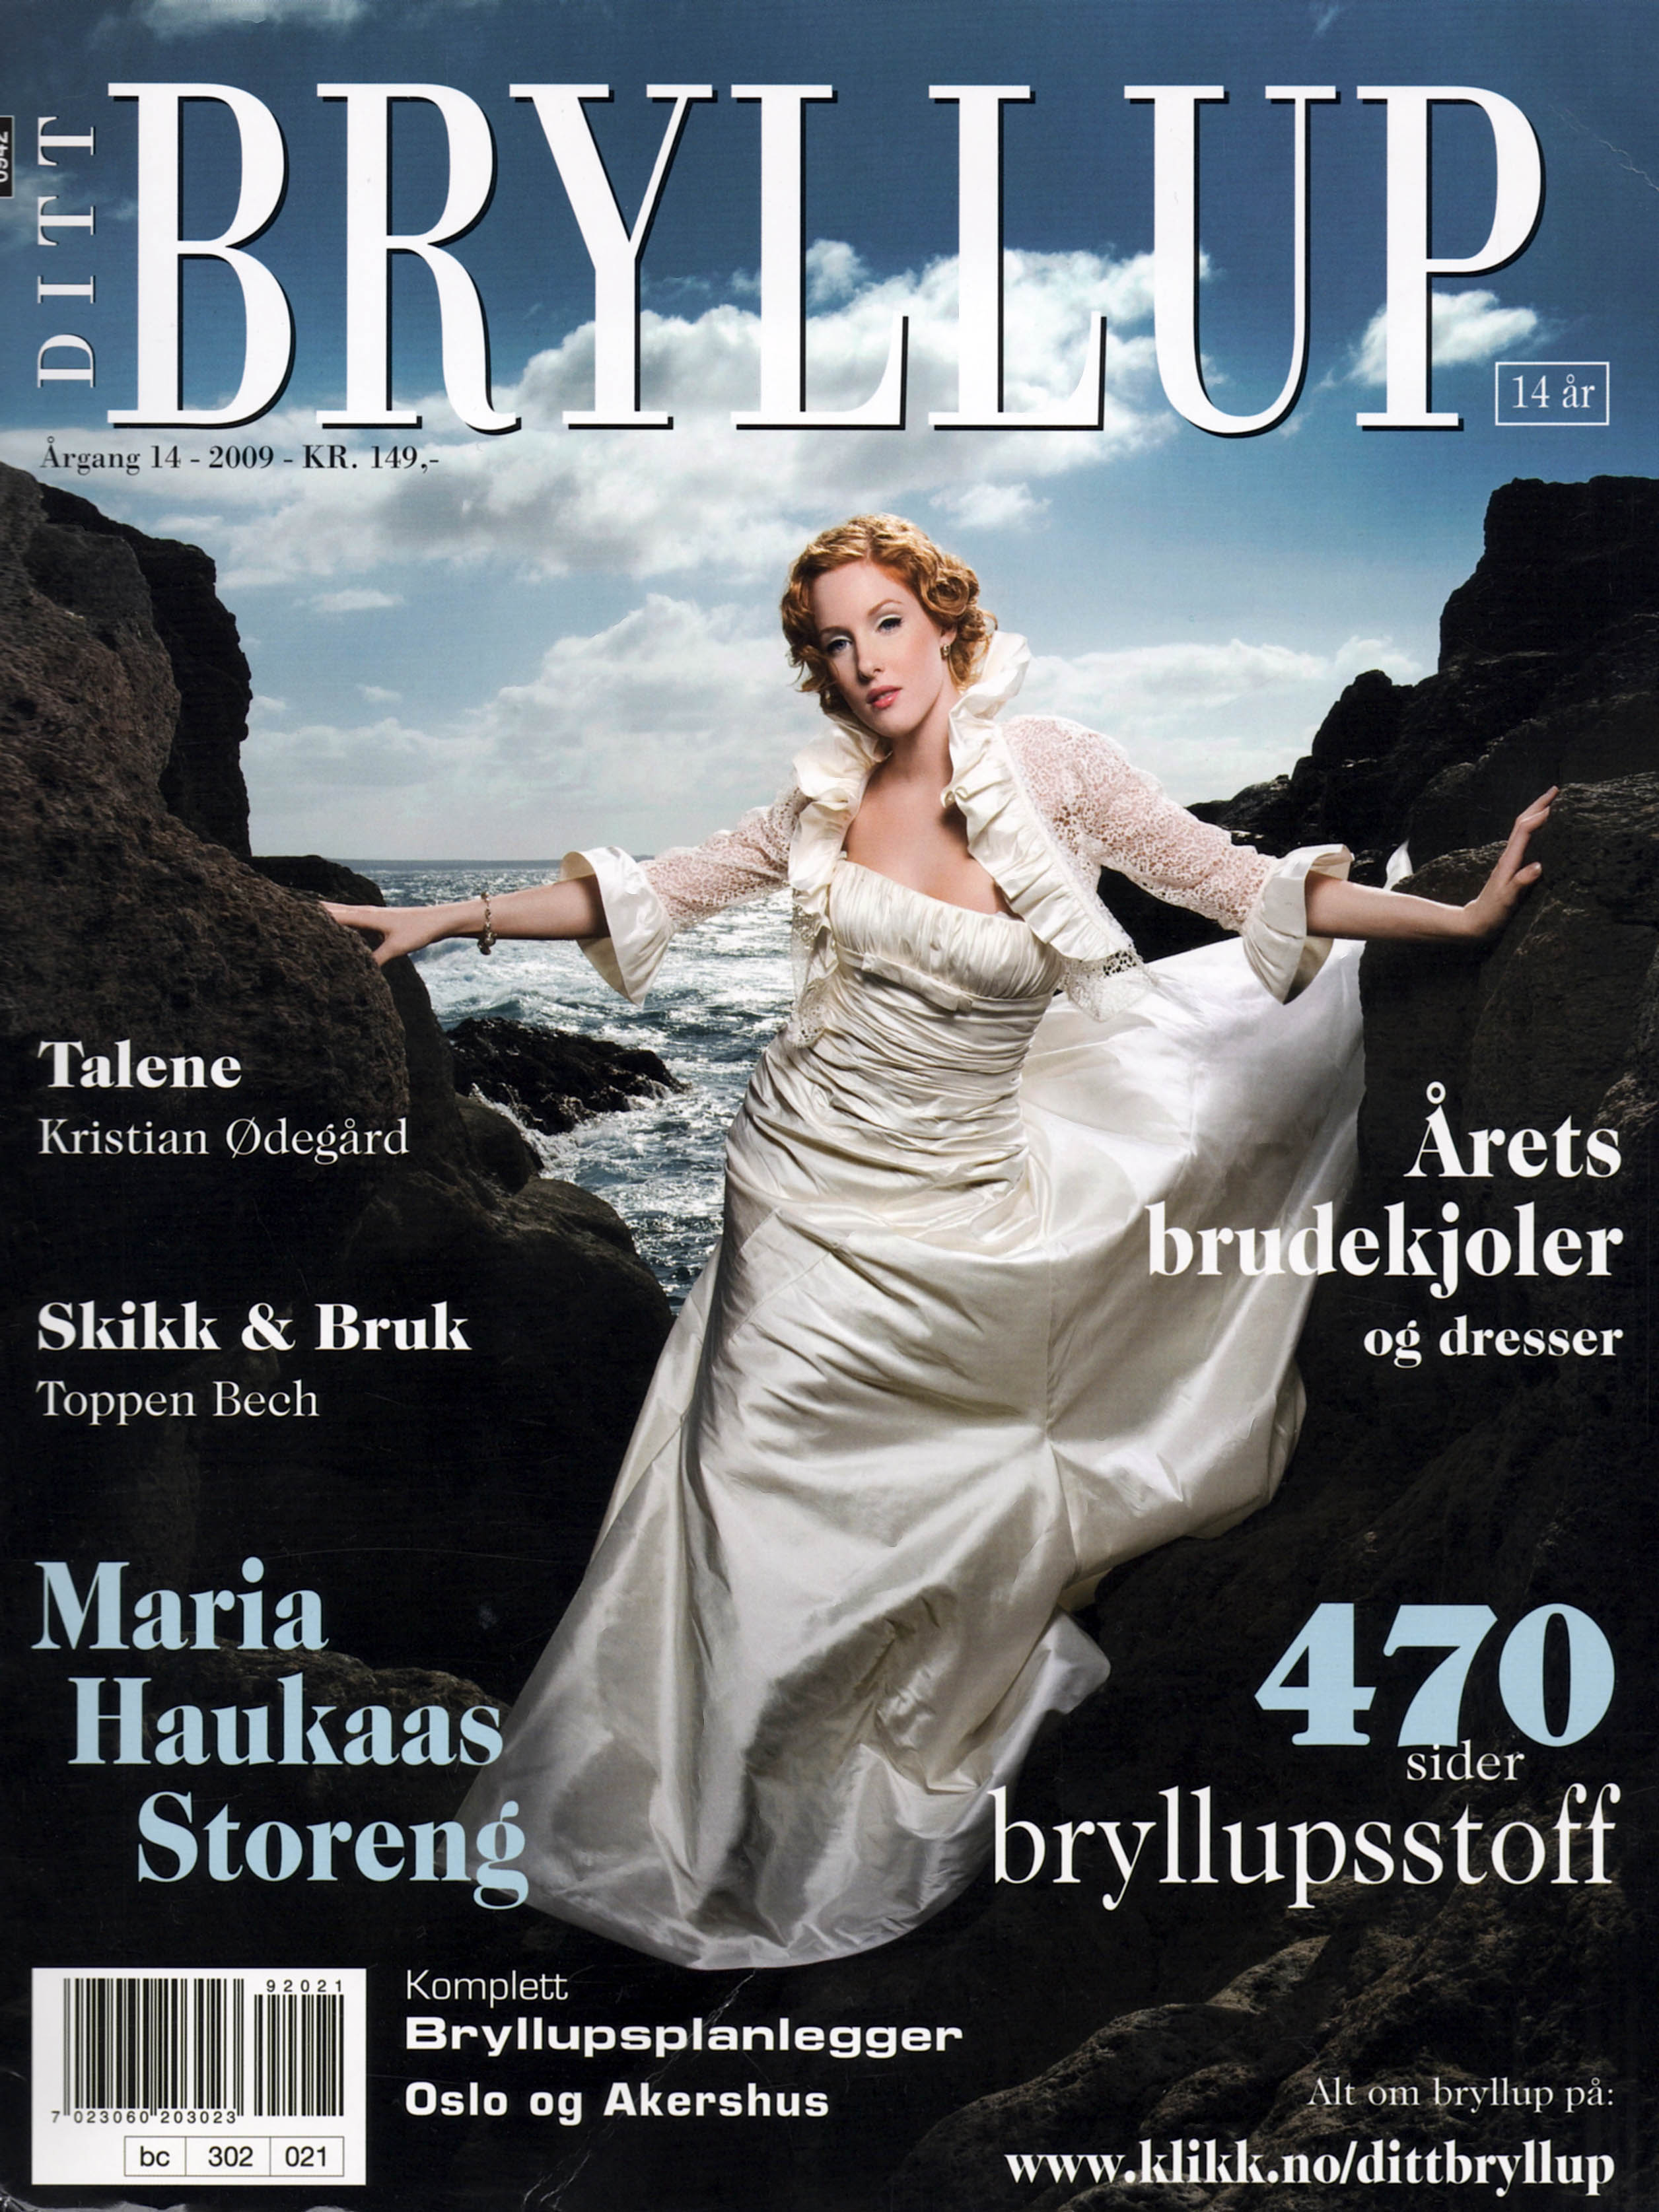 DB-cover 2009